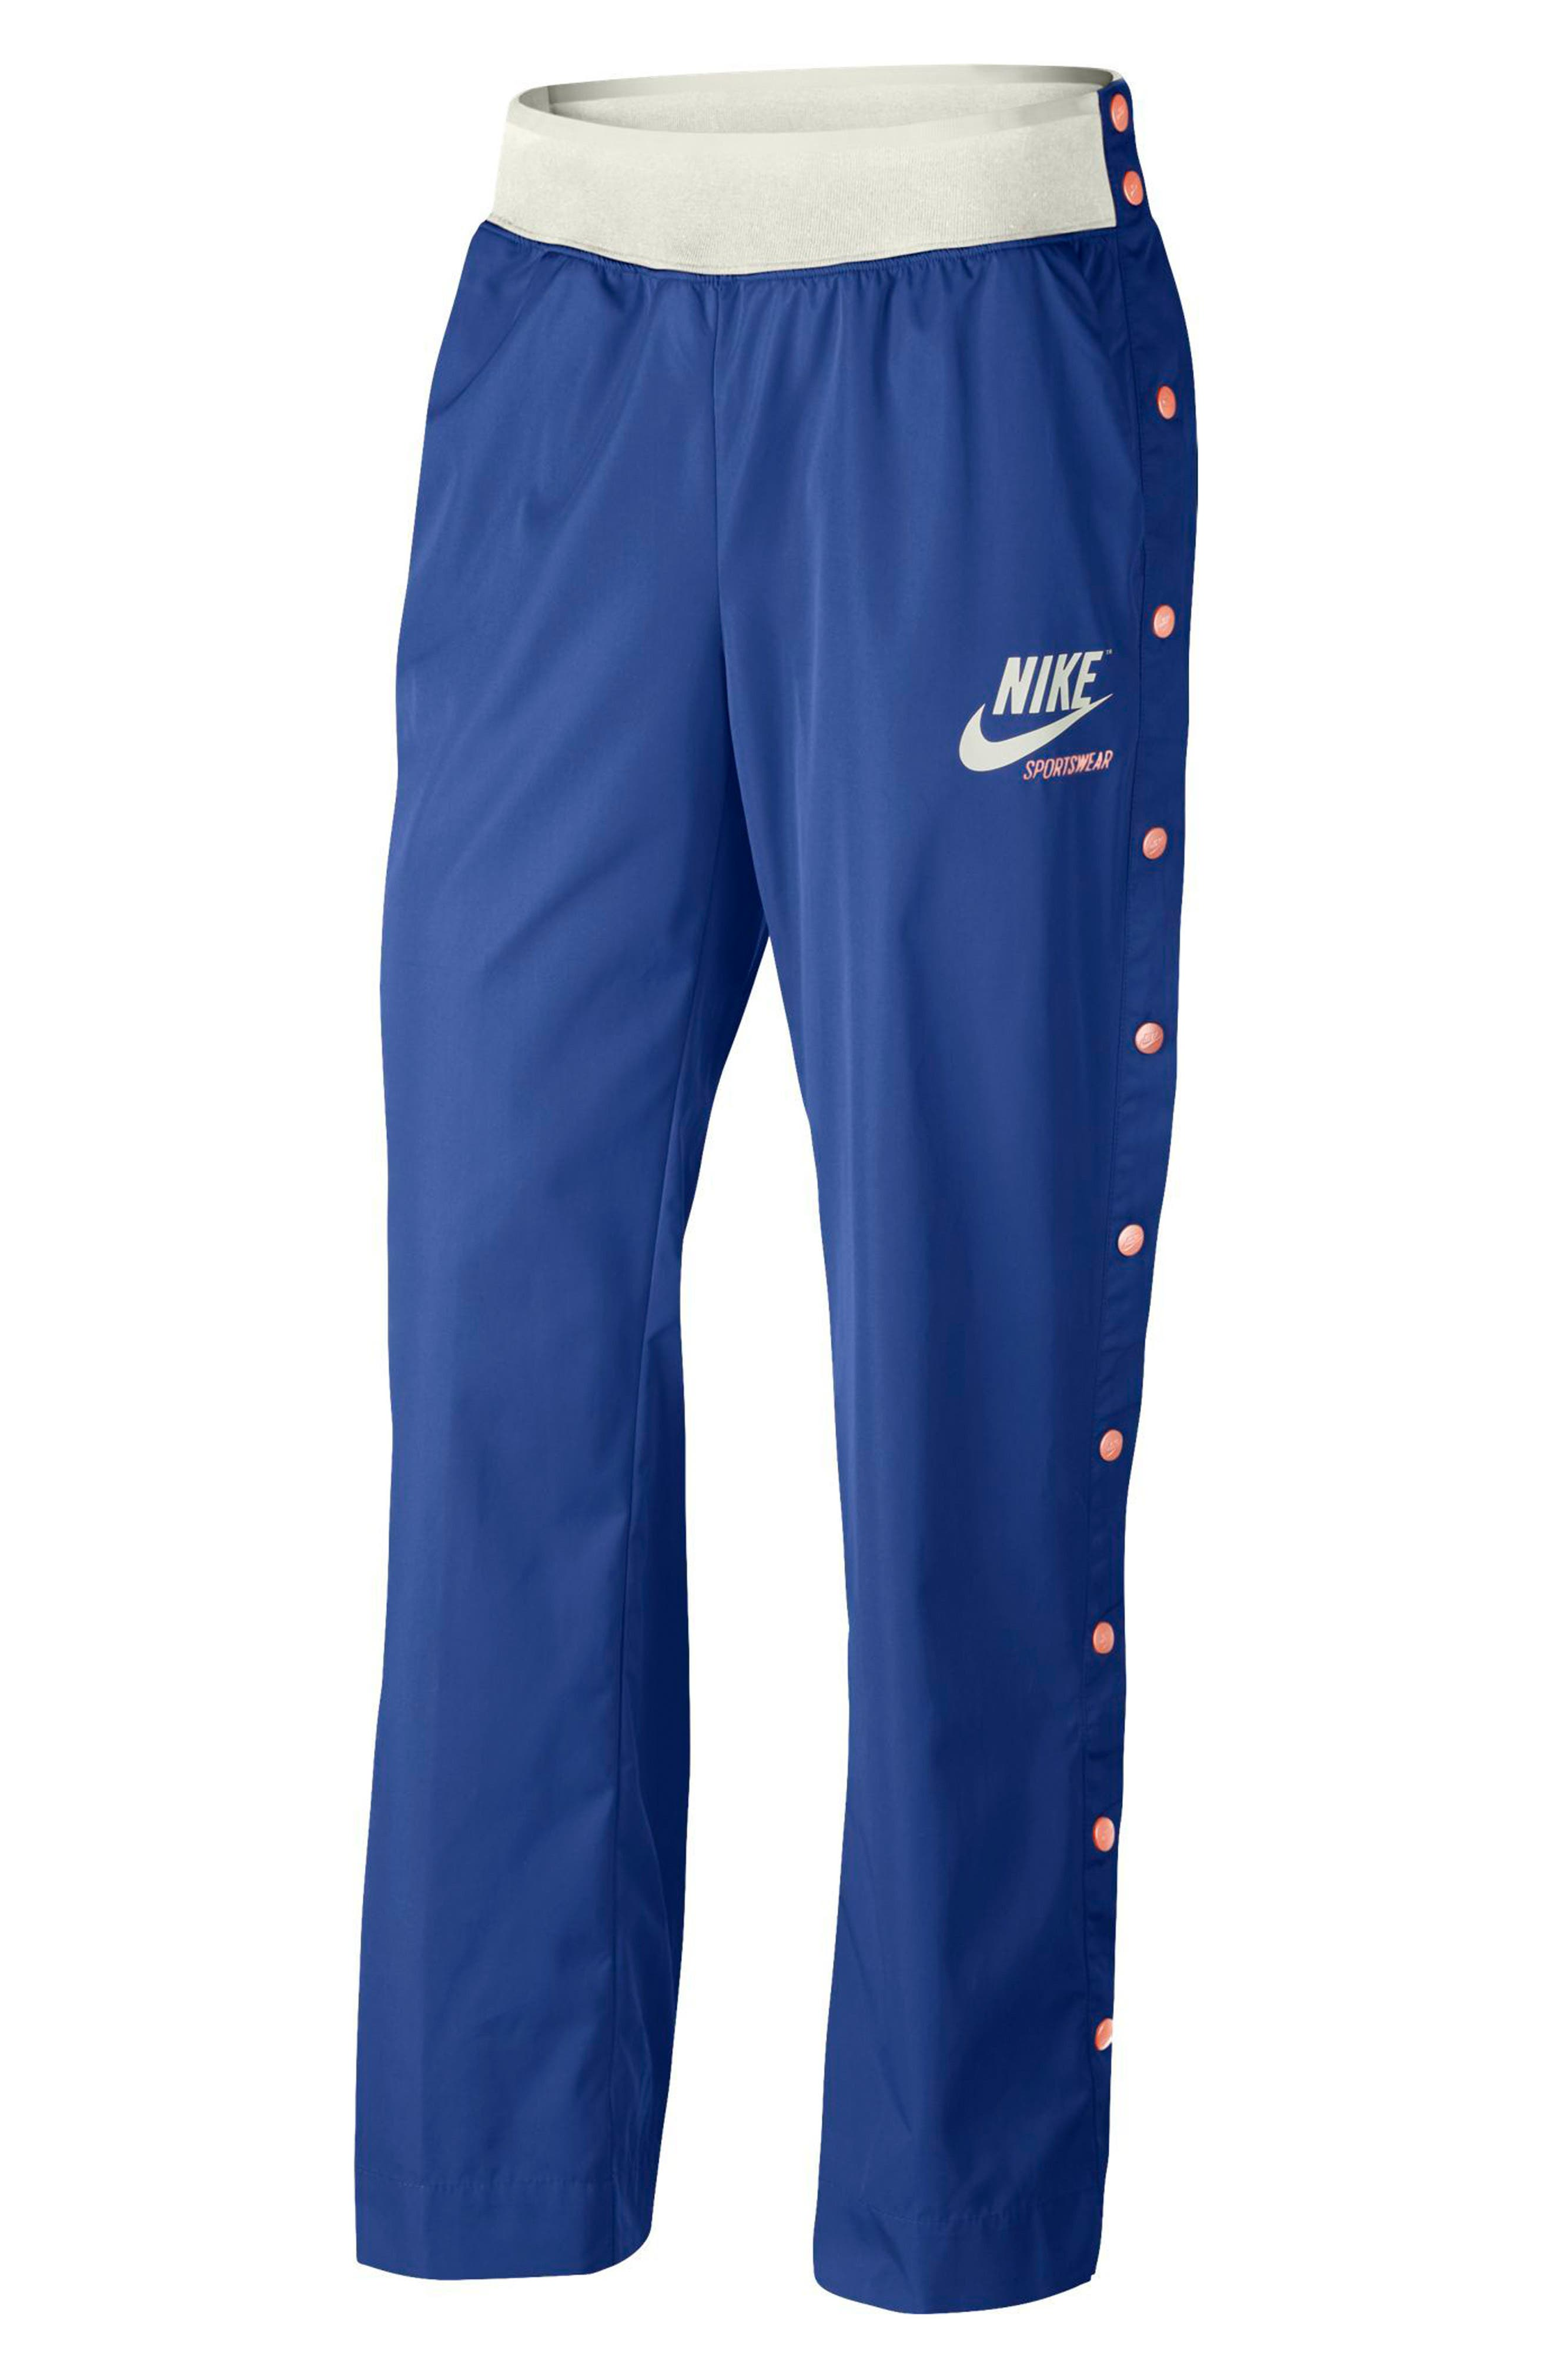 Sportswear Women's Side Snap Pants,                         Main,                         color, Game Royal/ Bleached Coral